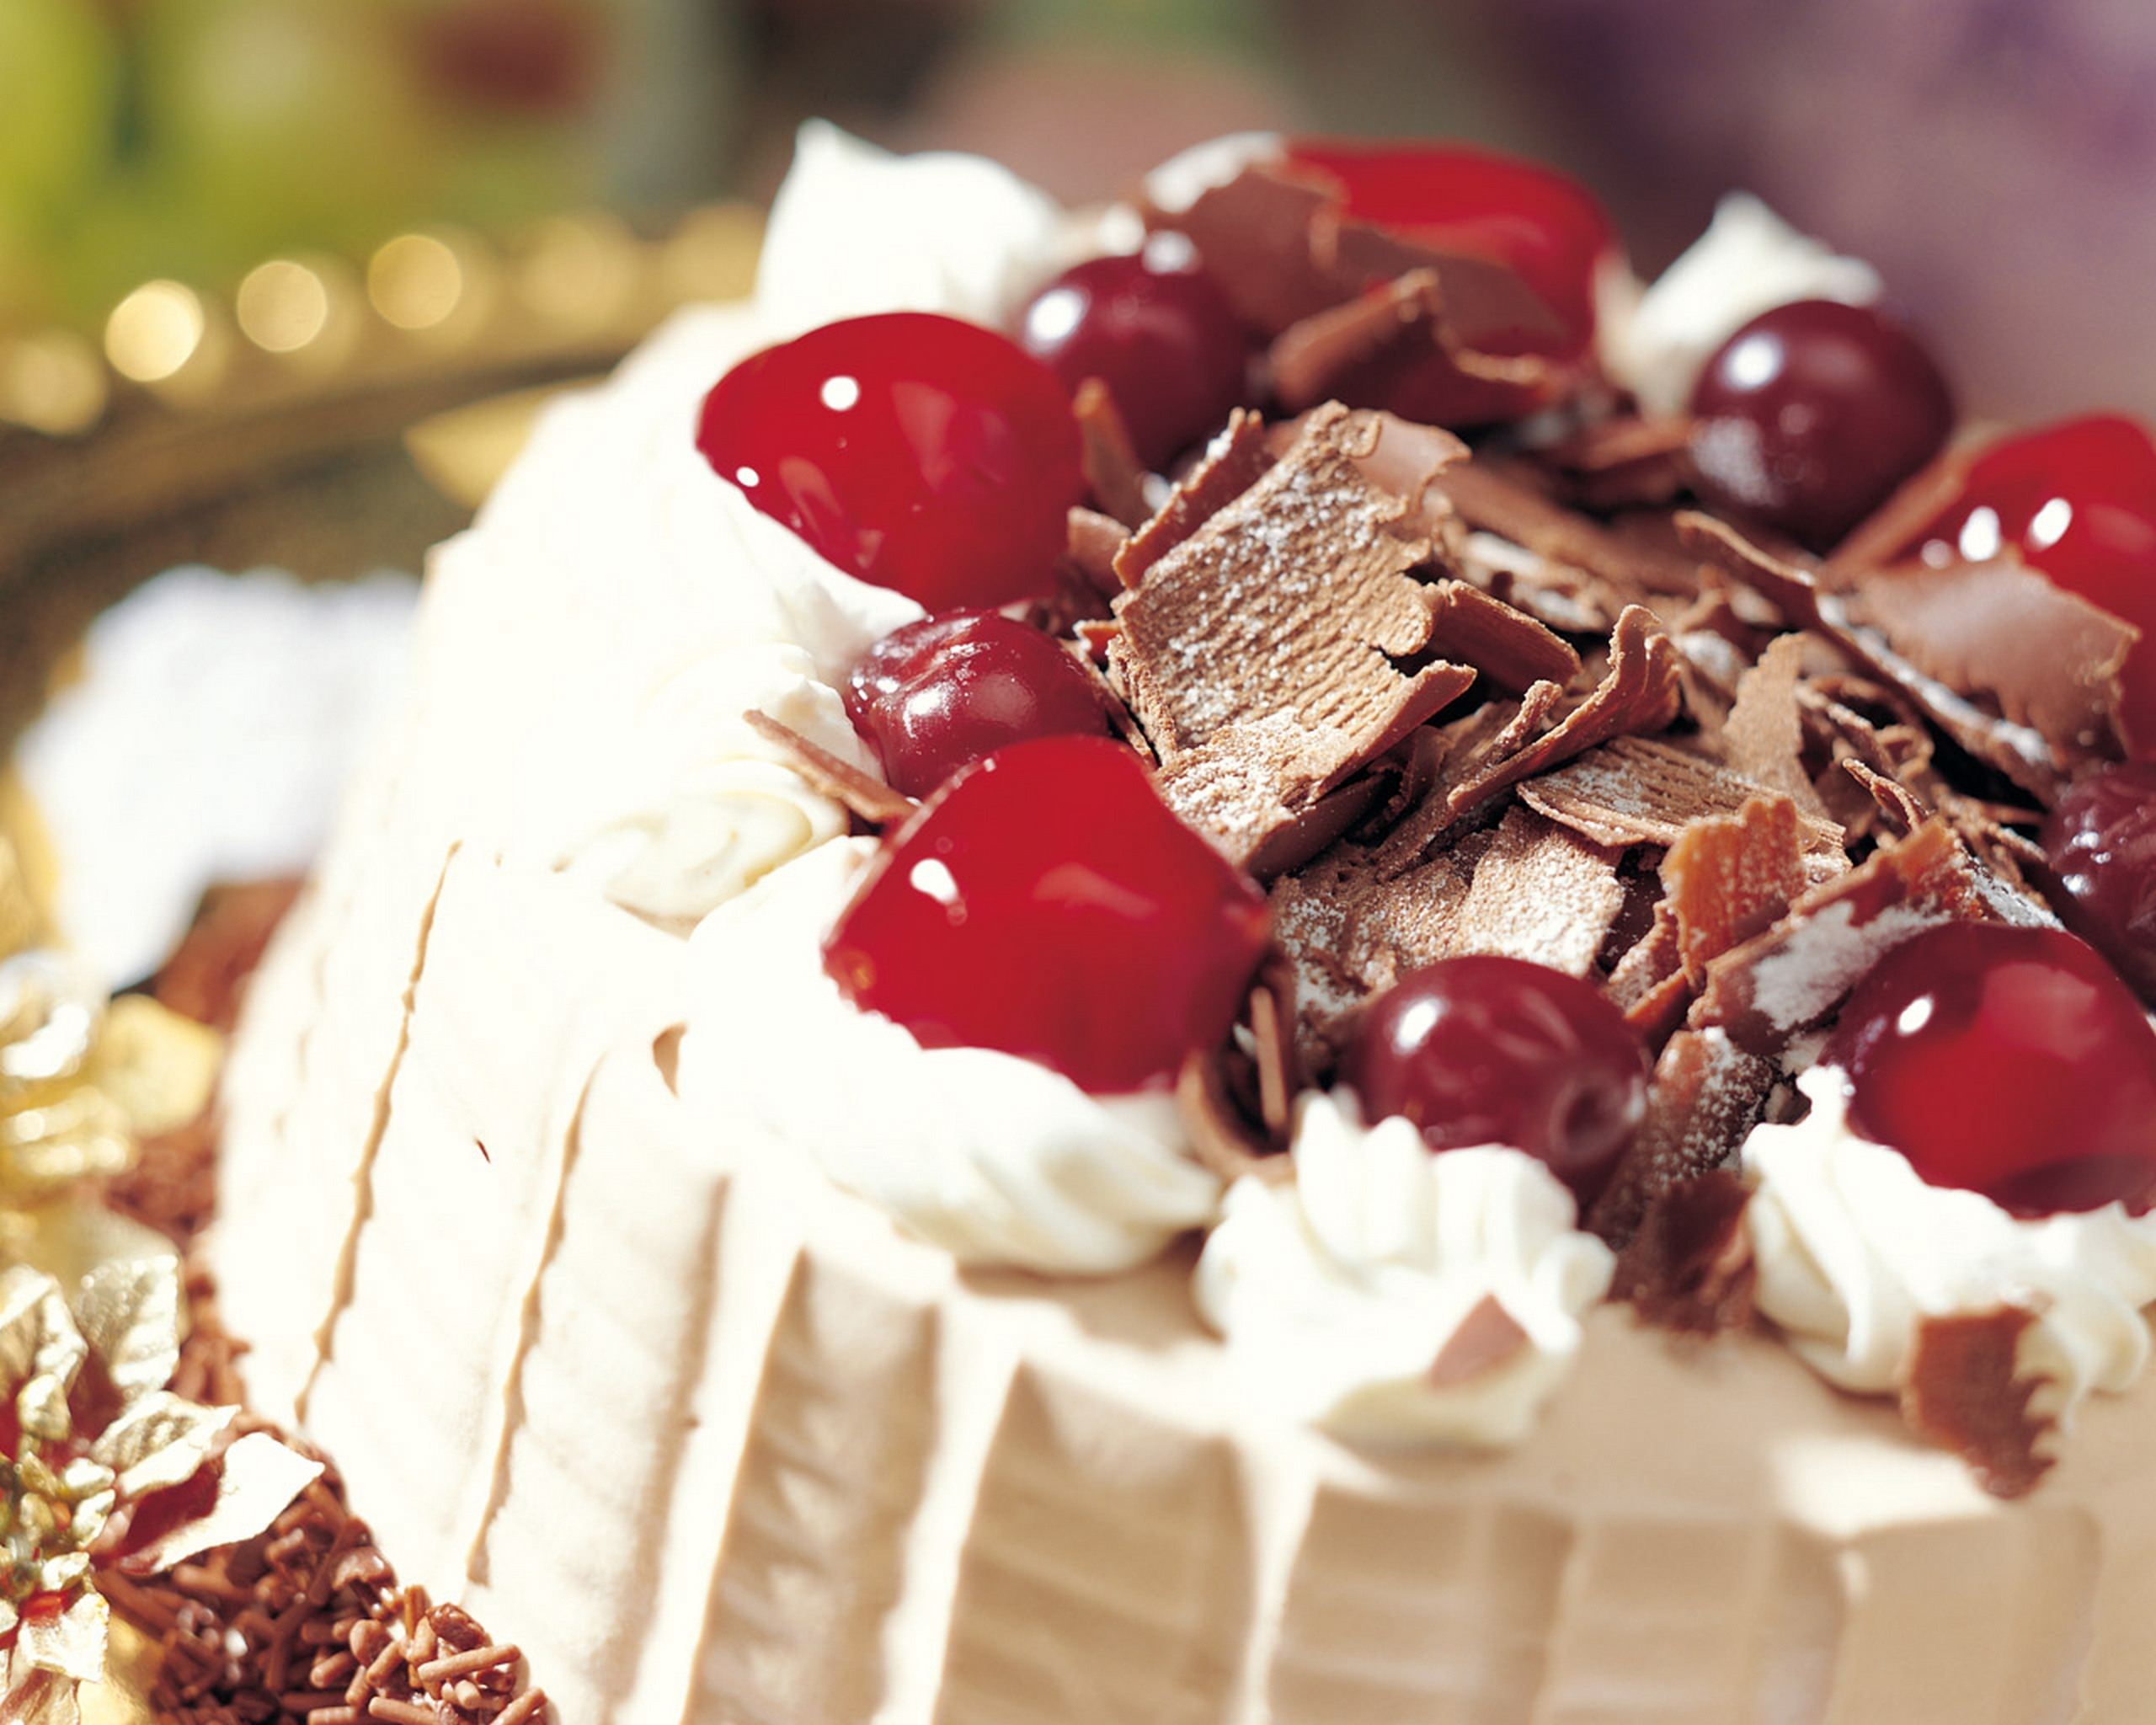 Hd Images Of Cake For Brother : ??????? - Cake 2 (75 ?????)   ?????? ???????? ???? ...